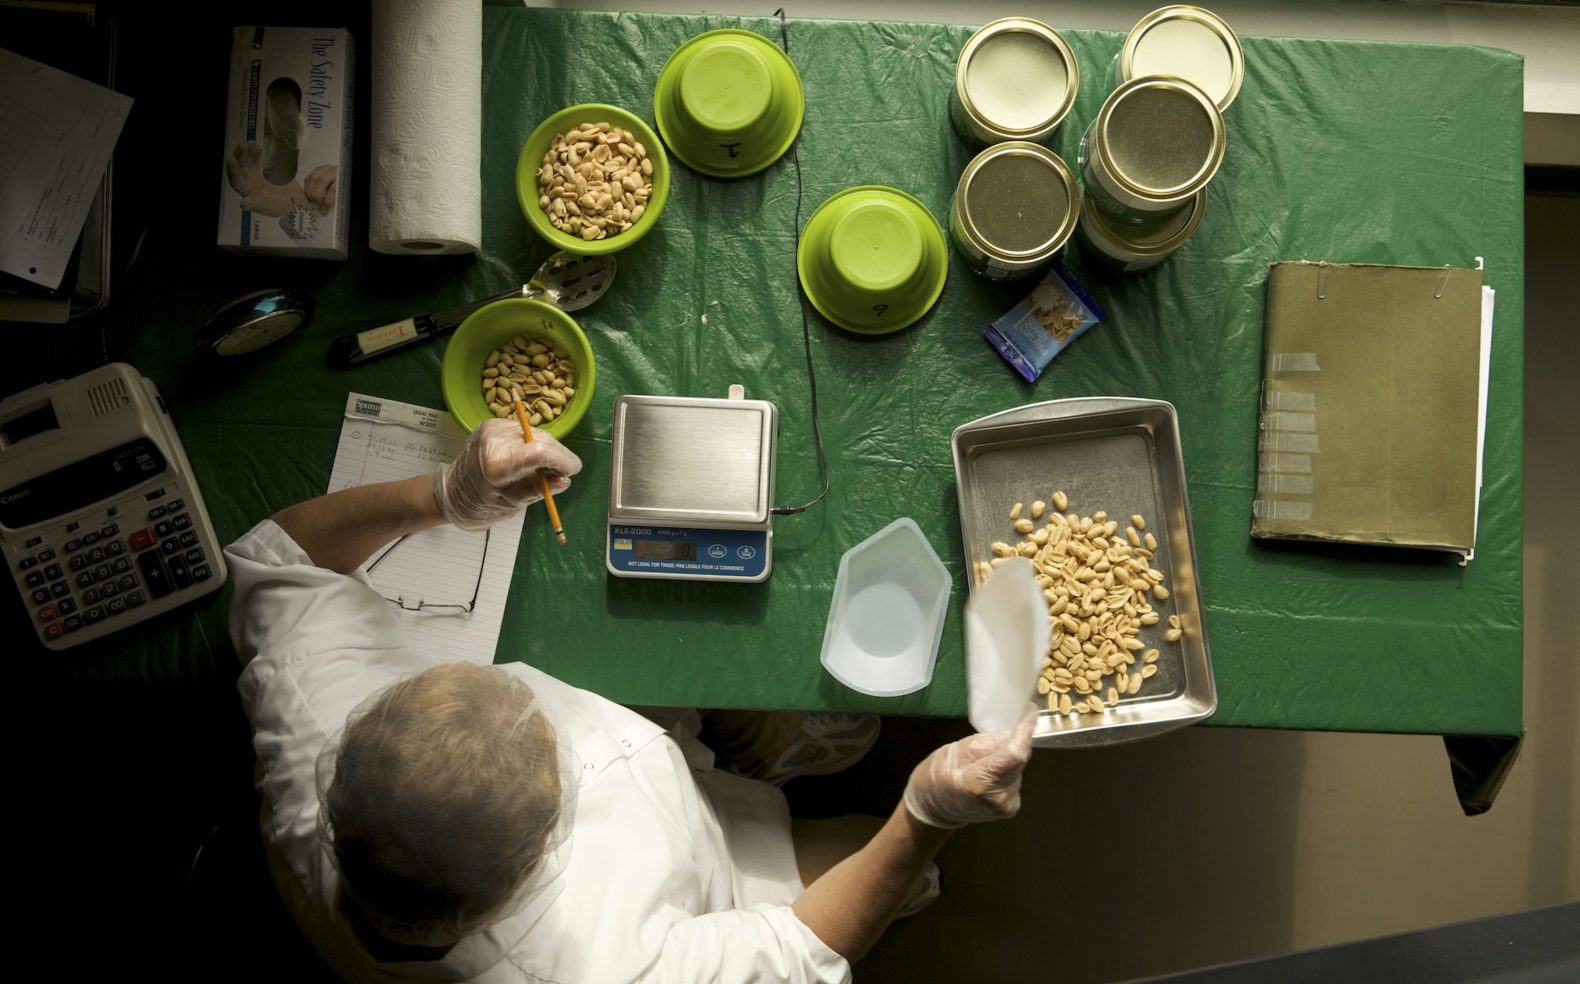 Professional photograph with overhead view of a manufacturing employee sorting and weighing peanuts on a table